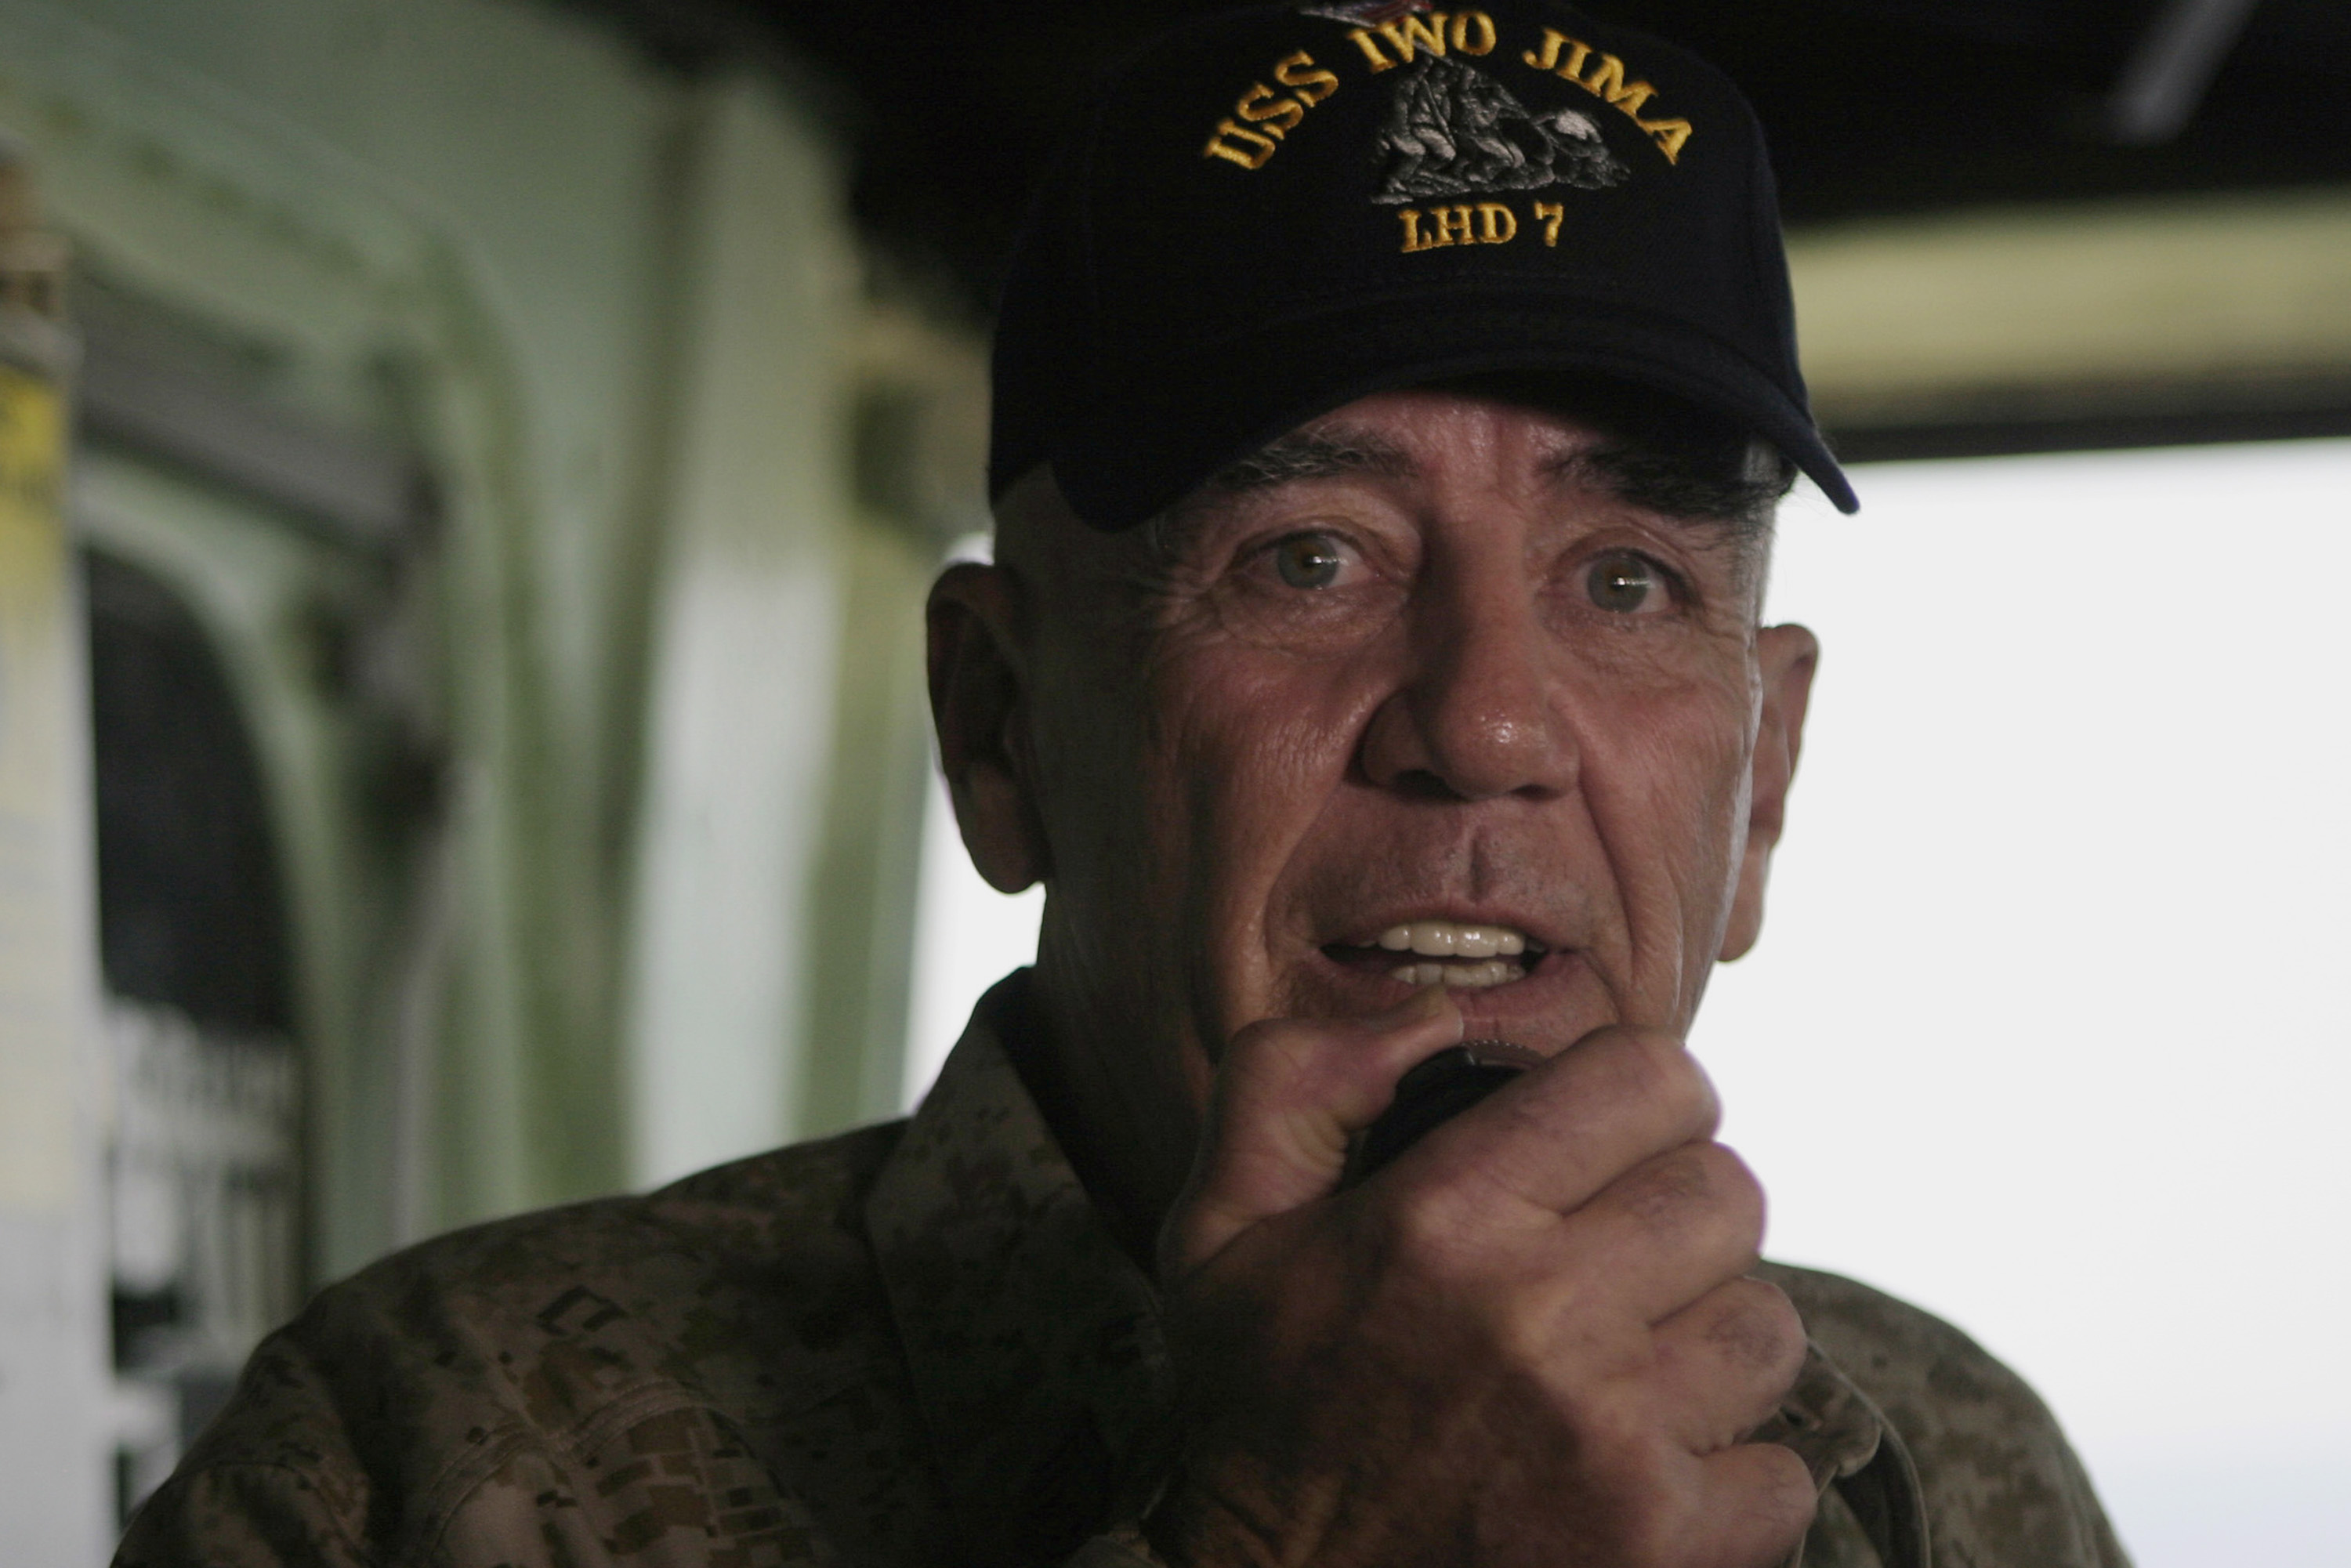 Actor and Marine Corps icon Gunnery Sgt. R. Lee Ermey gives an